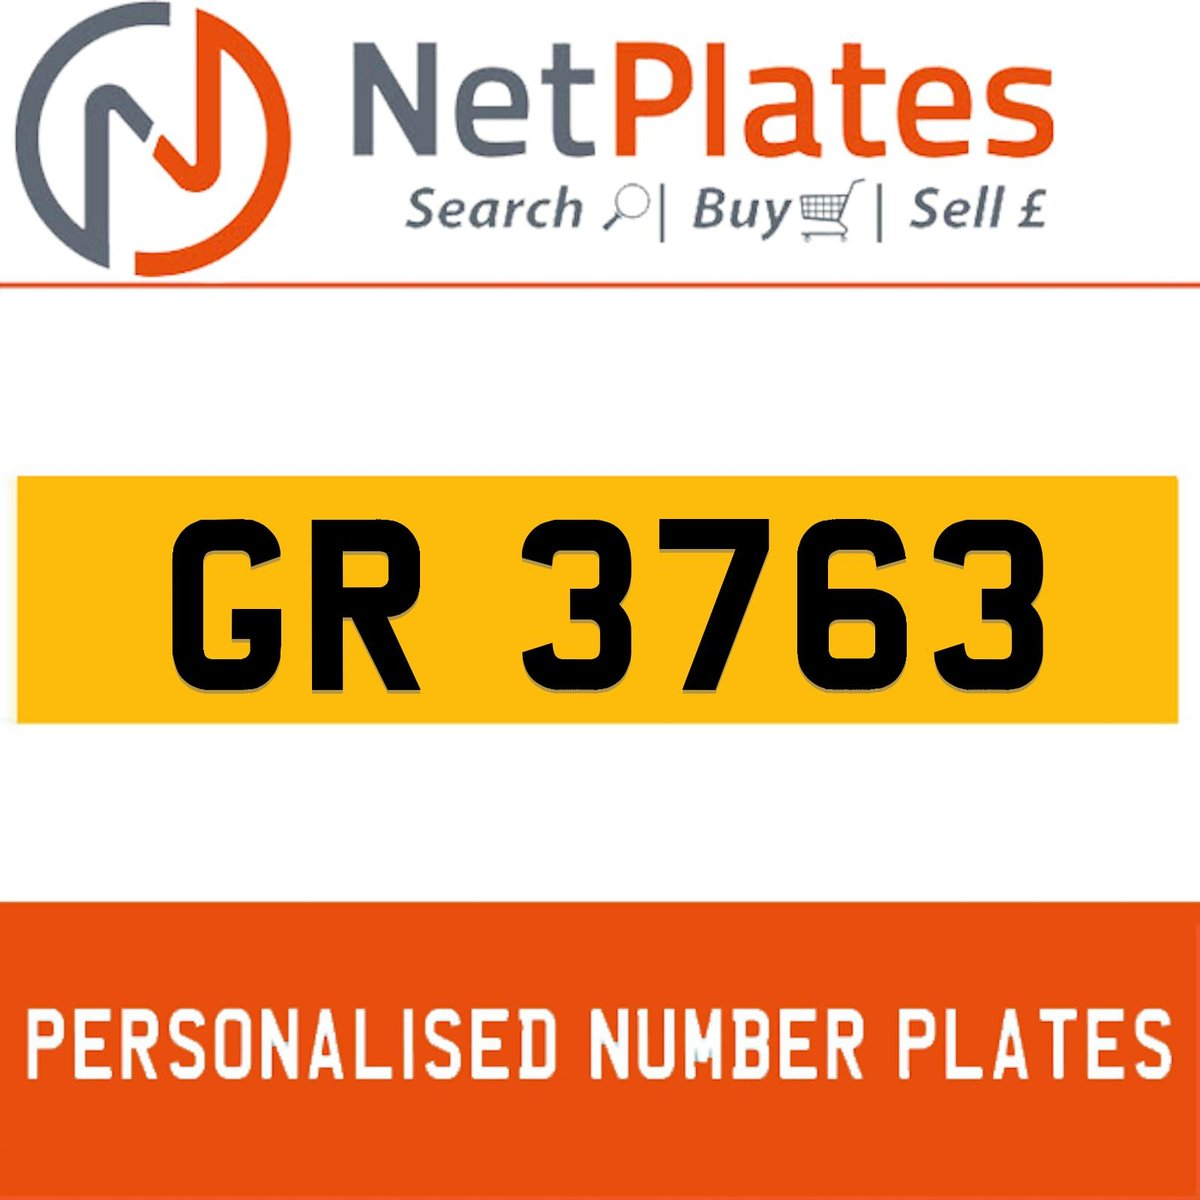 1900 GR 3763 PERSONALISED PRIVATE CHERISHED DVLA NUMBER PLATE For Sale (picture 1 of 5)